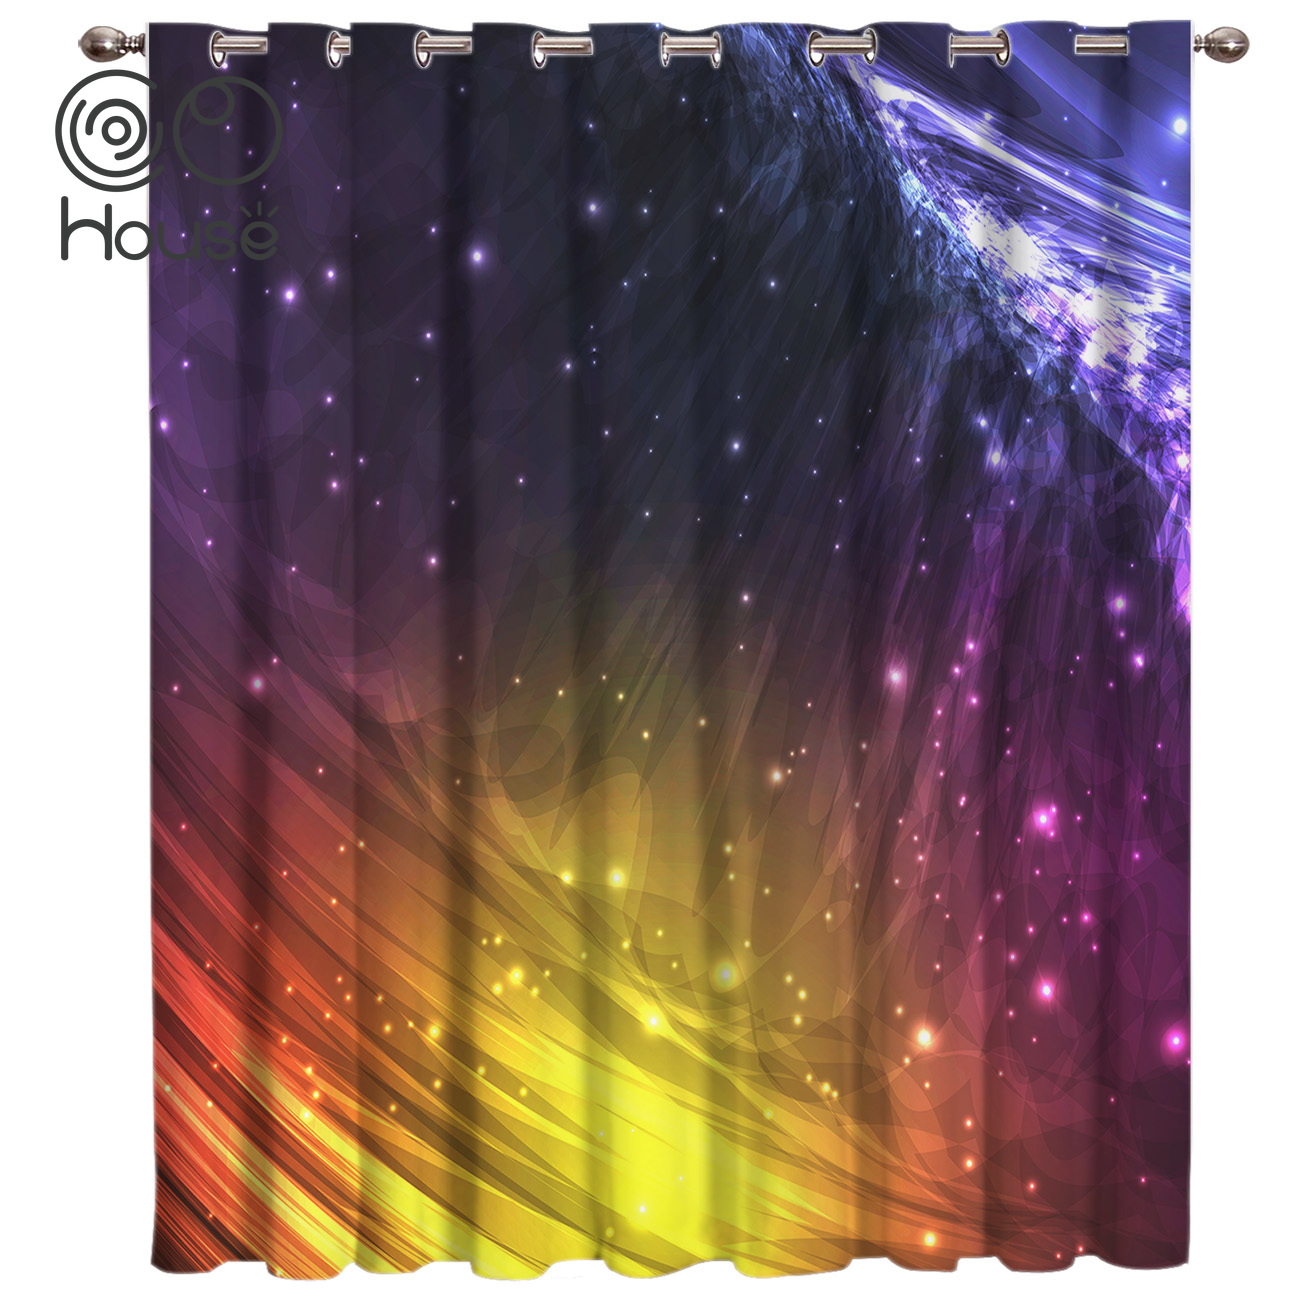 CoCoHouse Abstract Galaxy Scenery Curtain Lights Living Room Bathroom Outdoor Bedroom Decor Kids Curtain Panels With Grommets